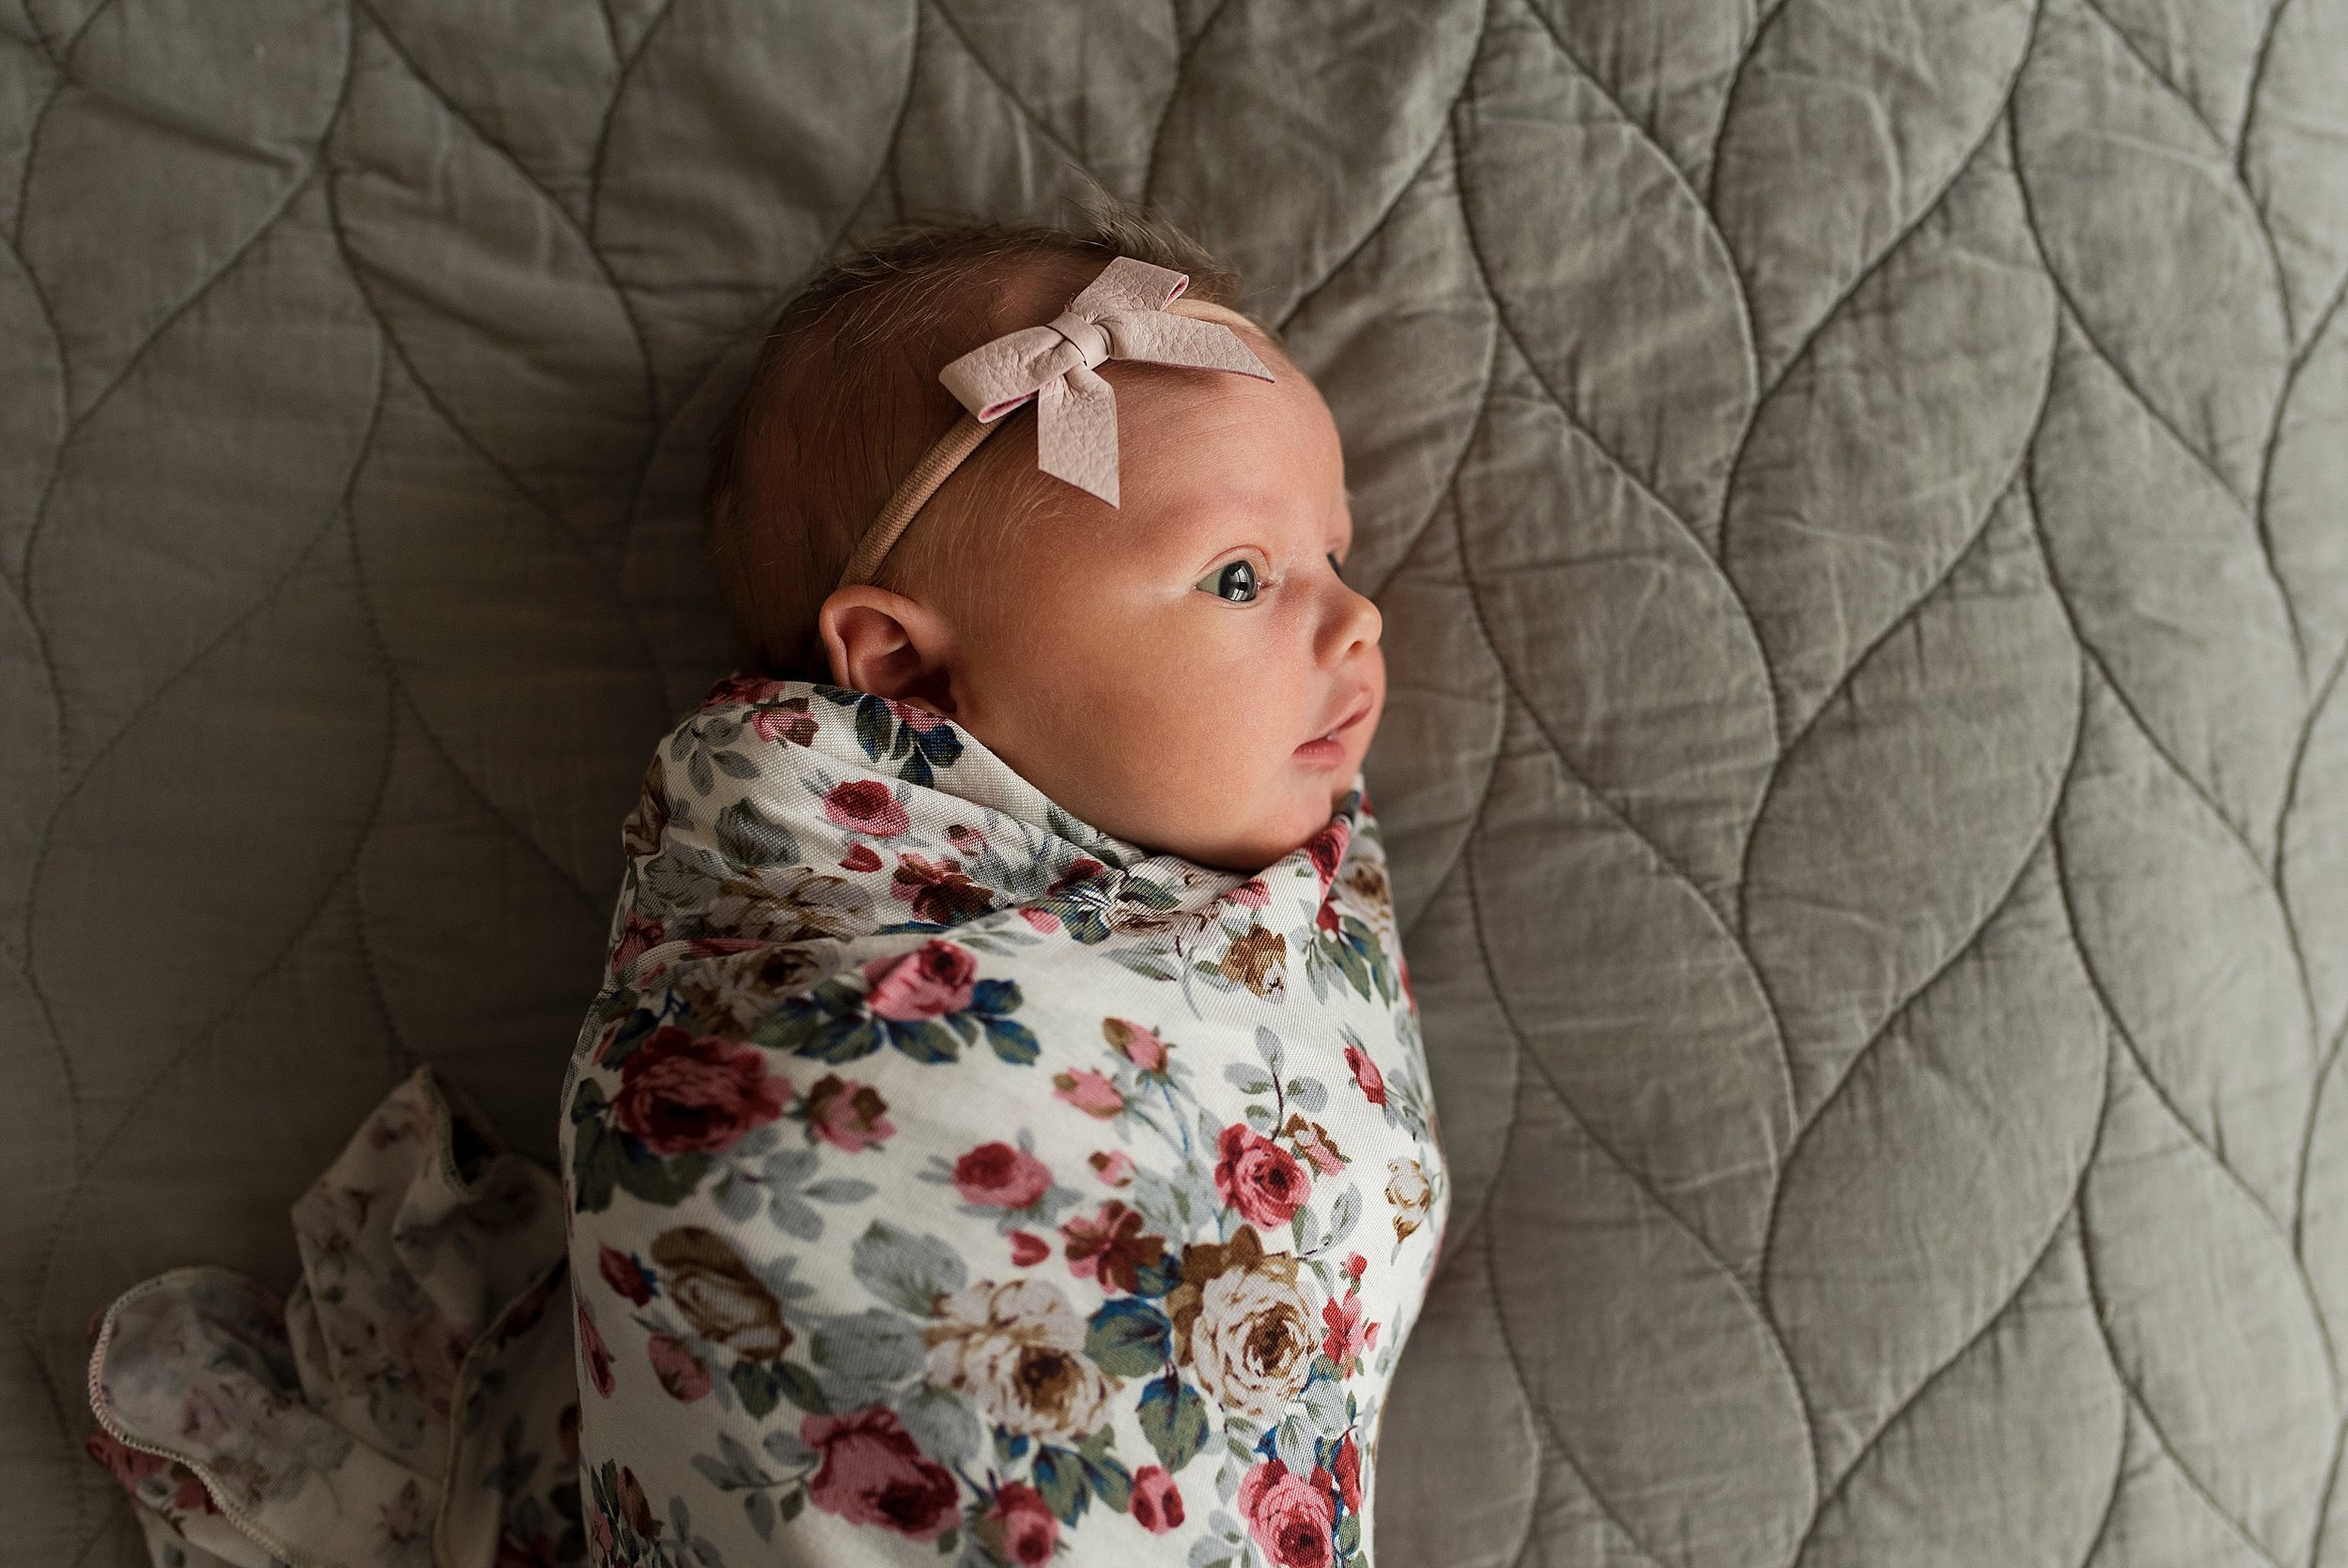 CT newborn baby girl in floral swaddle and pink headband during photography session.